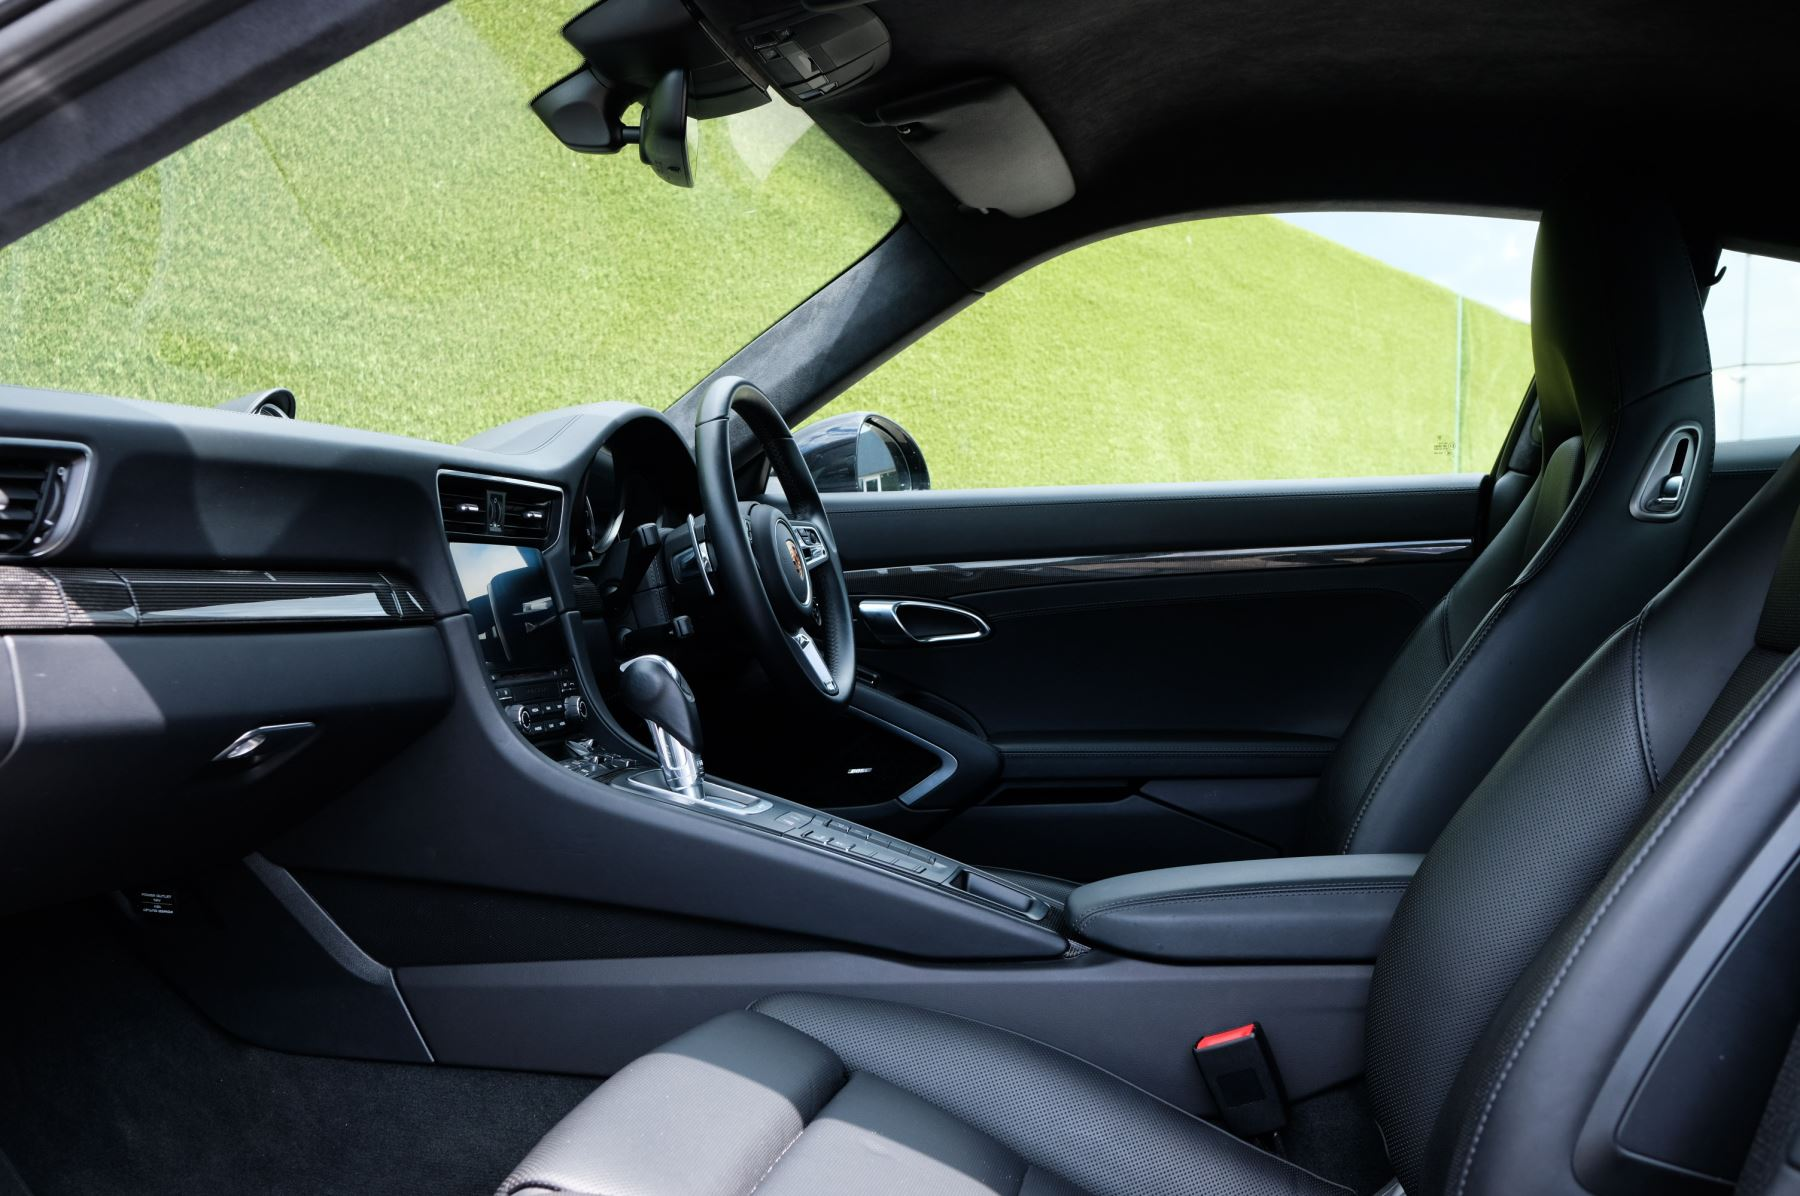 Porsche 911 PDK - Carbon interior package - Privacy Glass - 20 inch Sport Classic wheels image 19